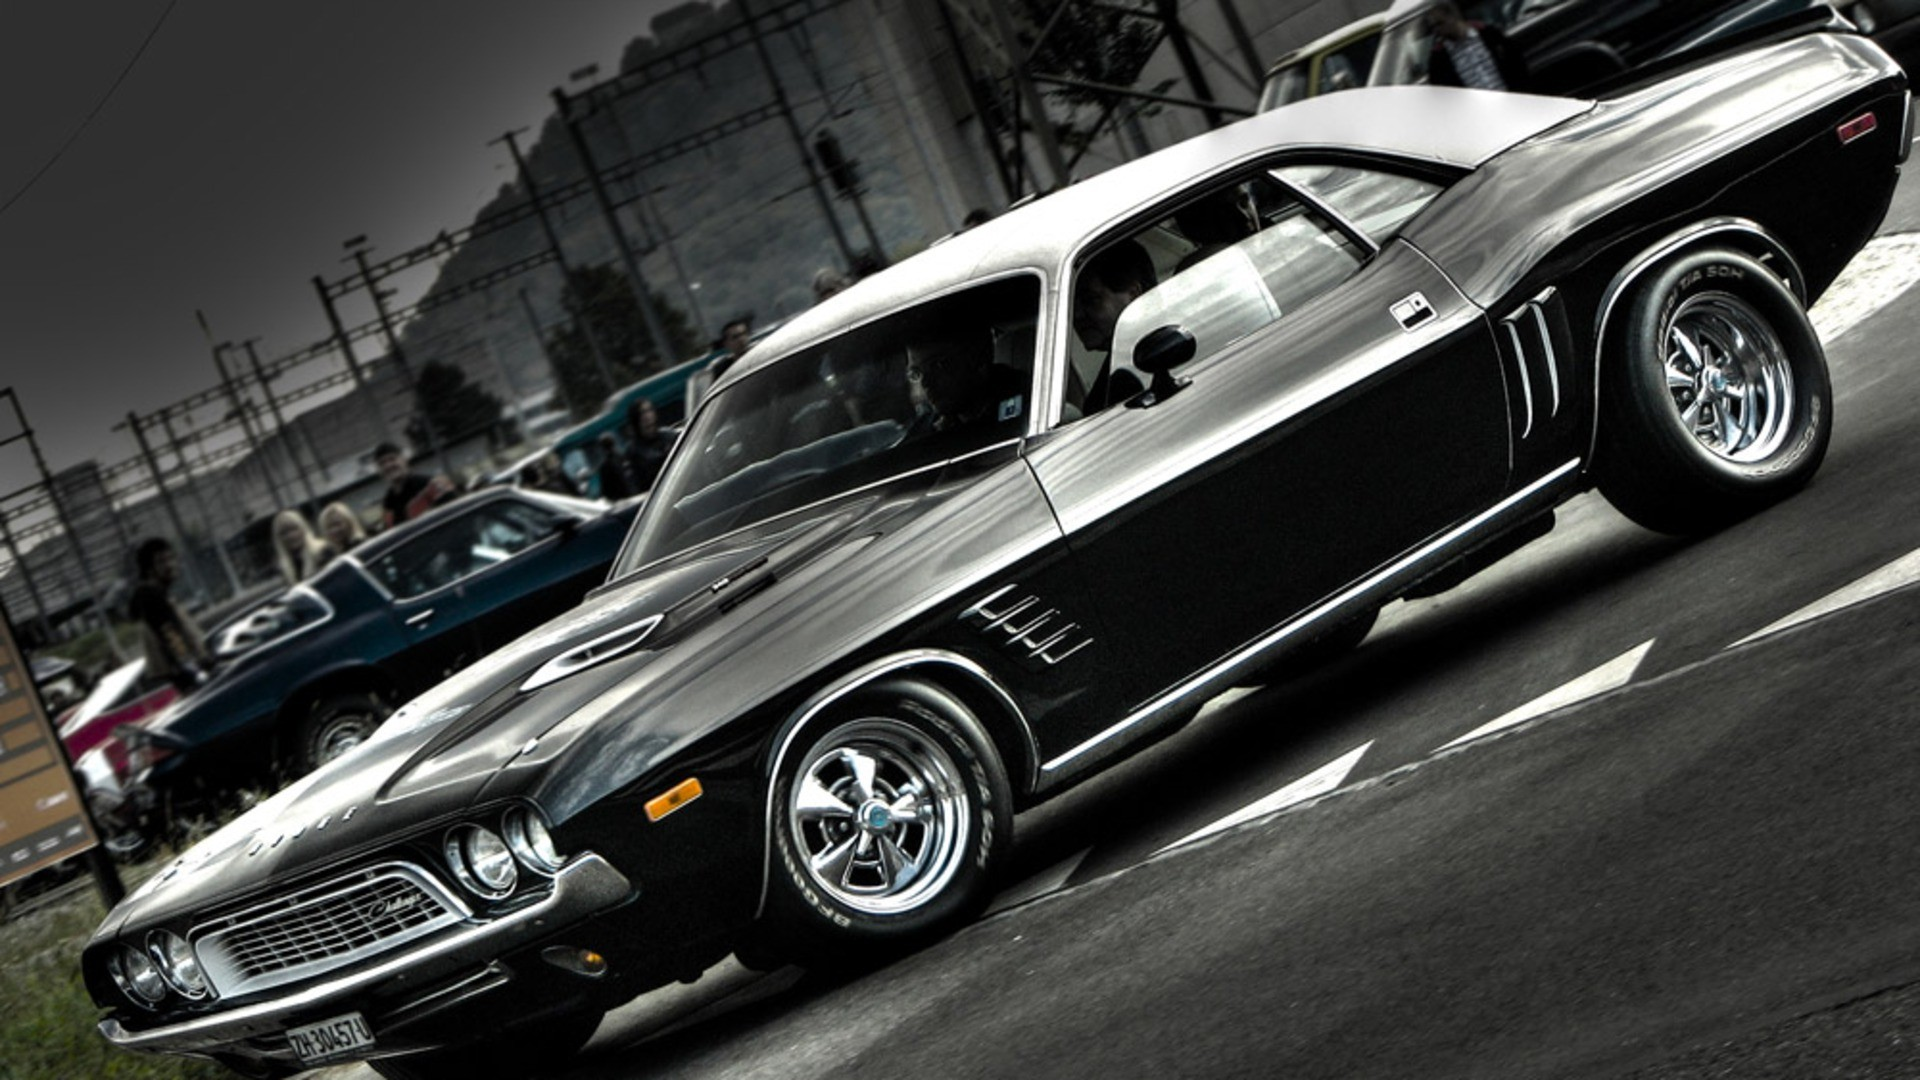 Images Of American Muscle Cars. american muscle cars wallpaper